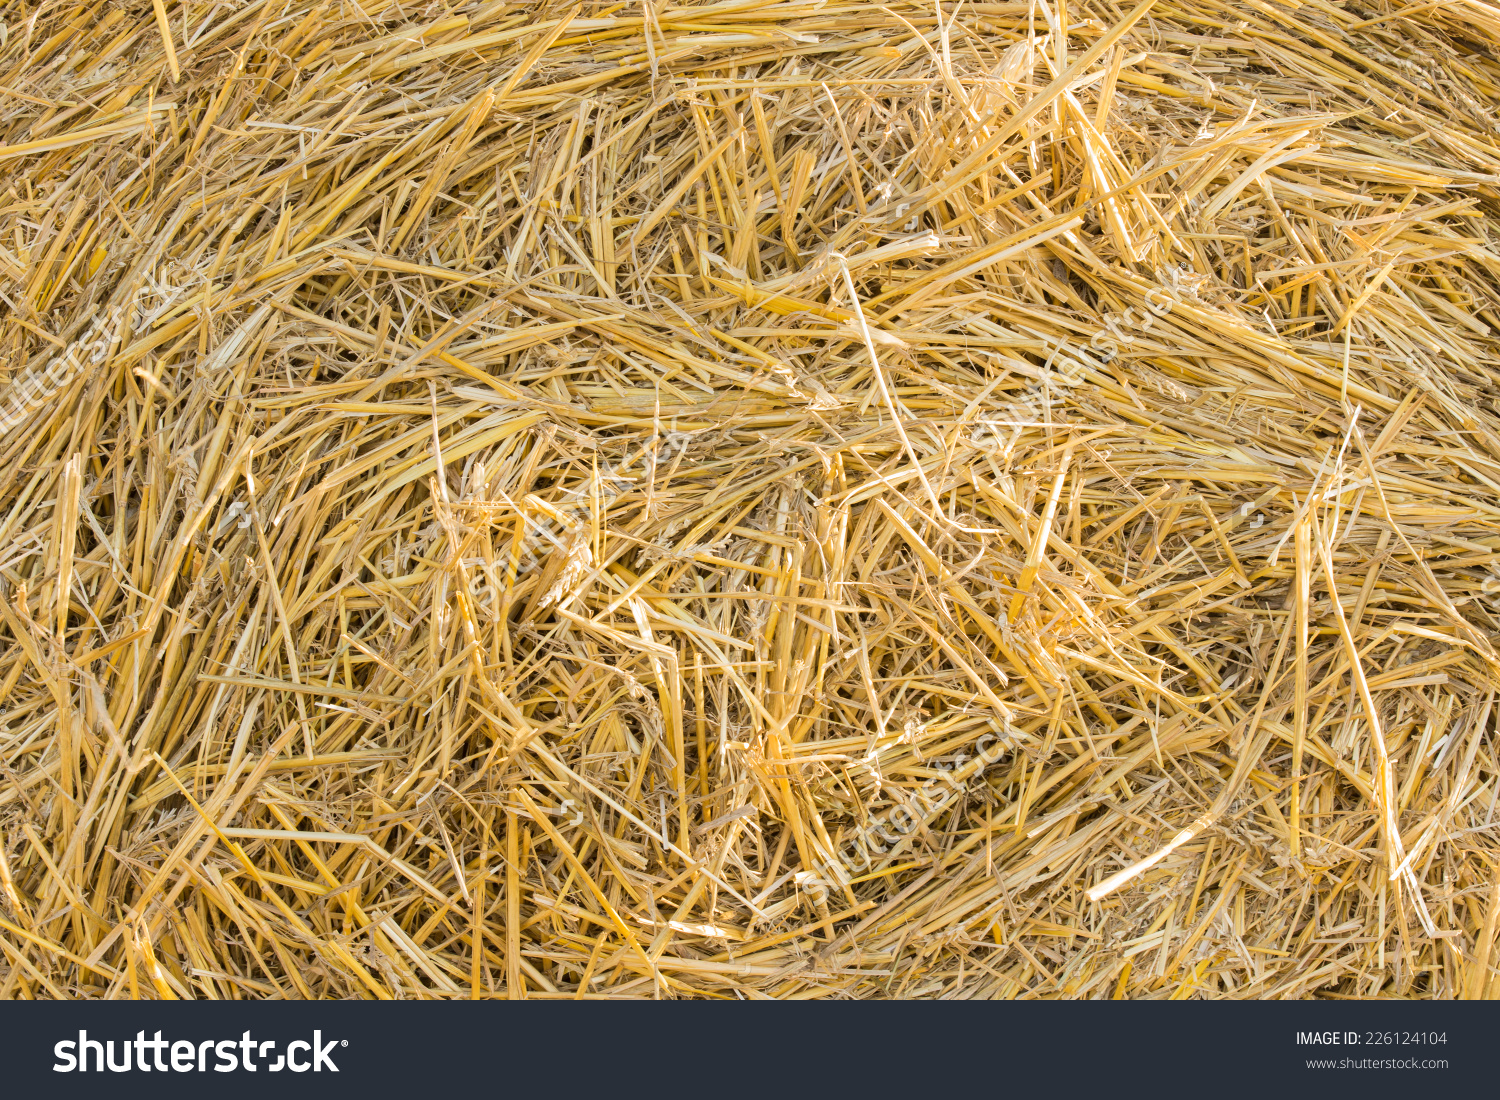 Background Texture Of Golden Stalks Of Fresh Dried Hay Cut For.